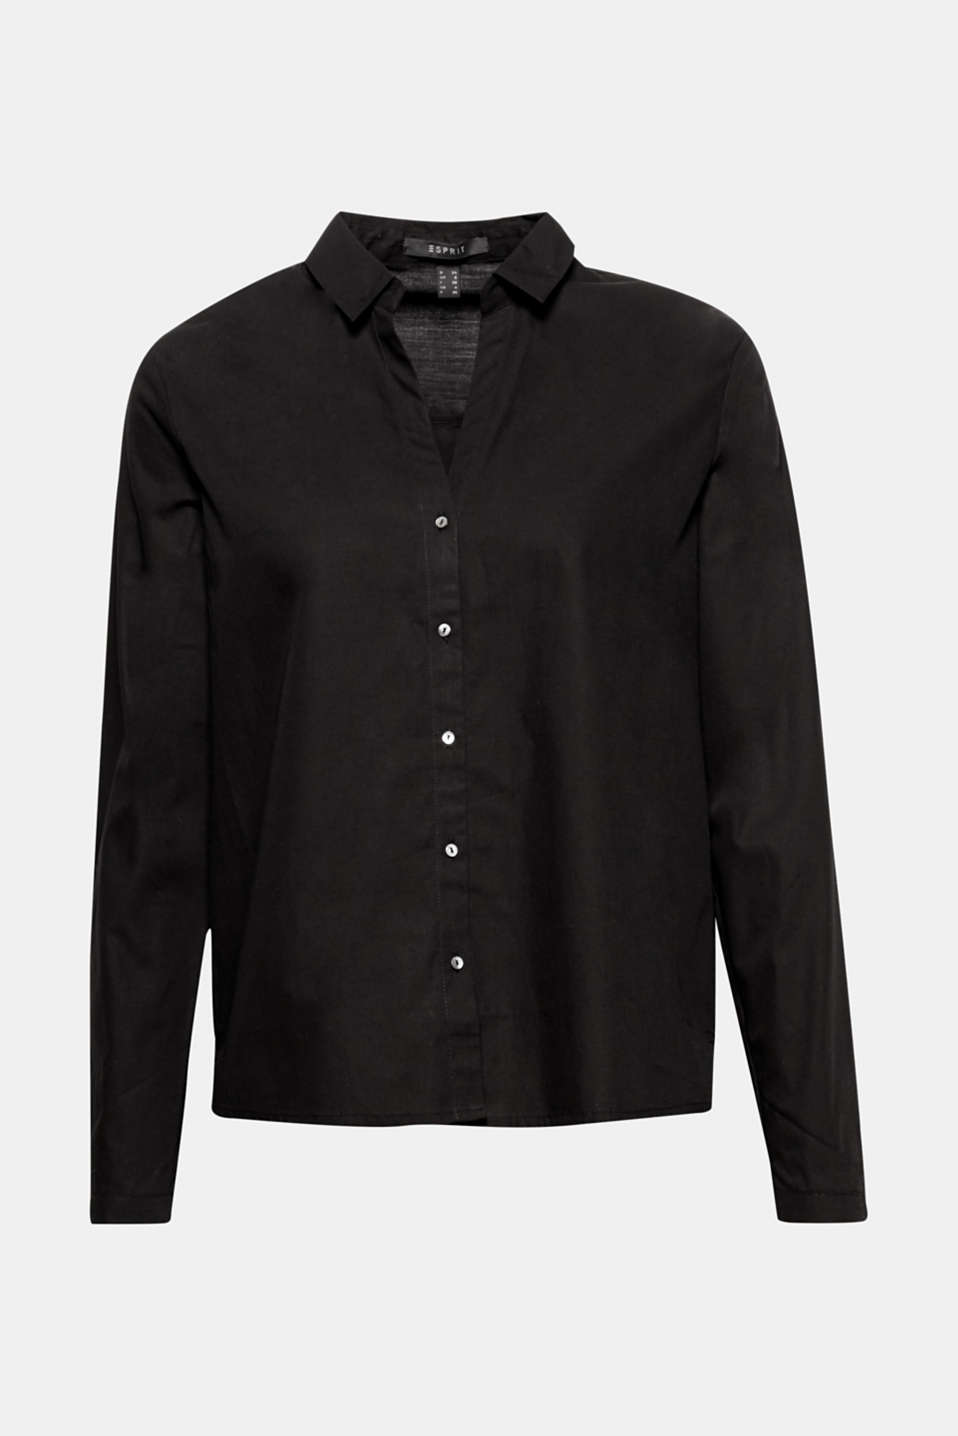 A must-have for lots of styles! Blouse with open shirt collar, straight cut and high-low hem.